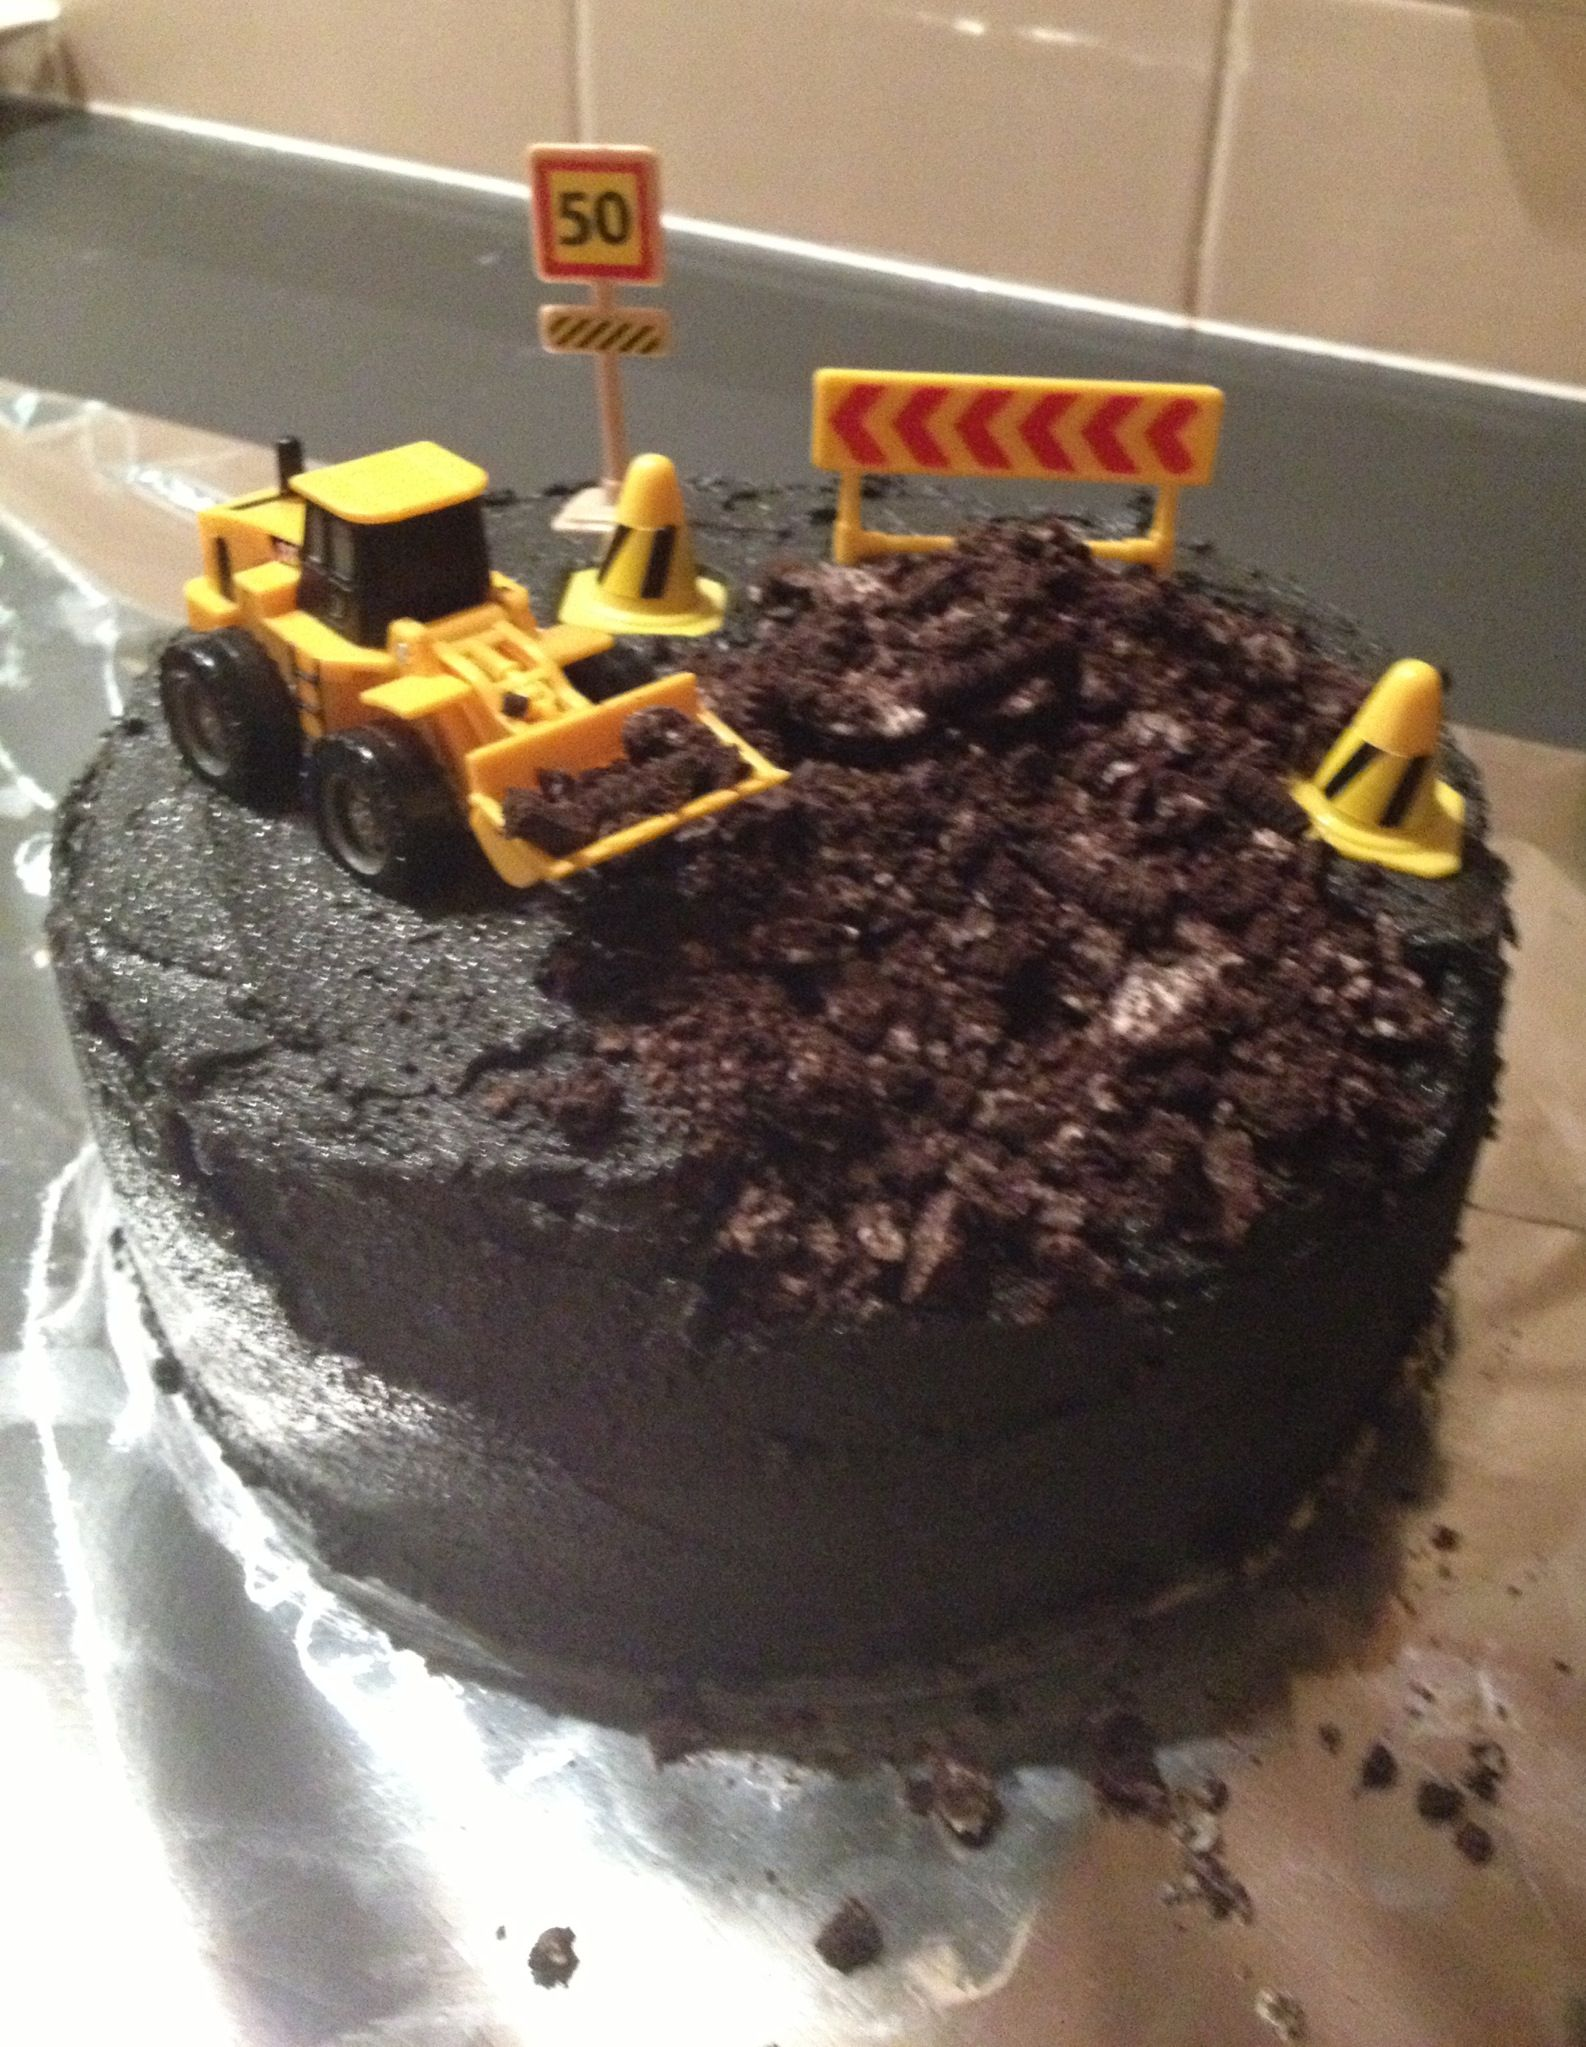 Remarkable Kids Birthday Cake Home Made Dirt And Tractors Perfect For A Funny Birthday Cards Online Chimdamsfinfo